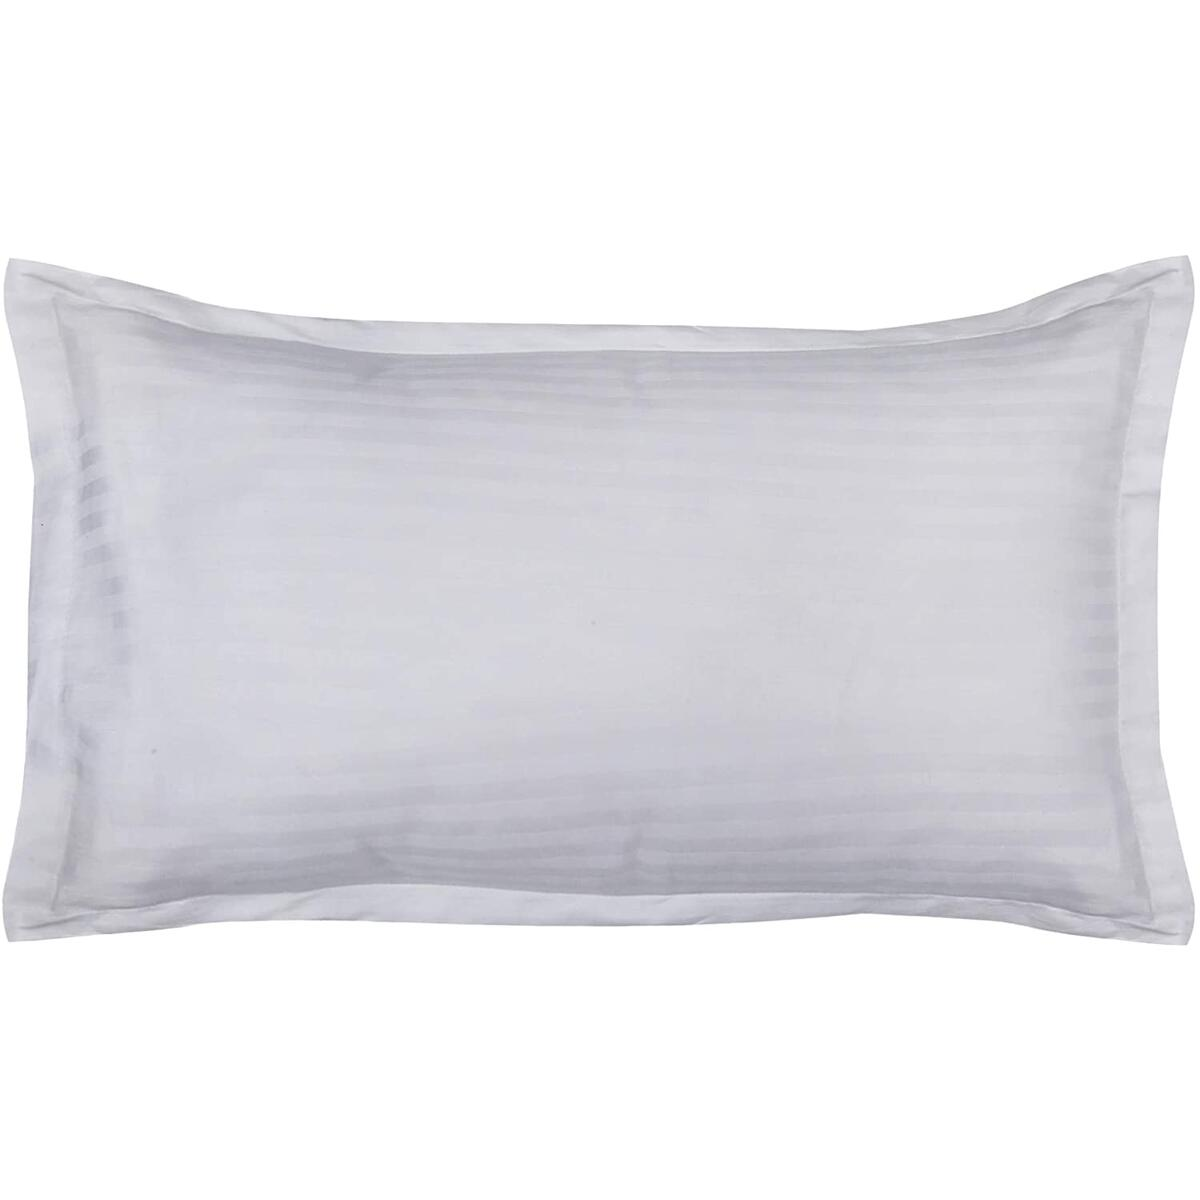 DHAROHAR HANDICRAFT Pure Cotton Satin Strip Pillowcase for Hair and Skin- Standard Size (20x30 inches) Pillow Covers-Pack of 1 Pillow Cover